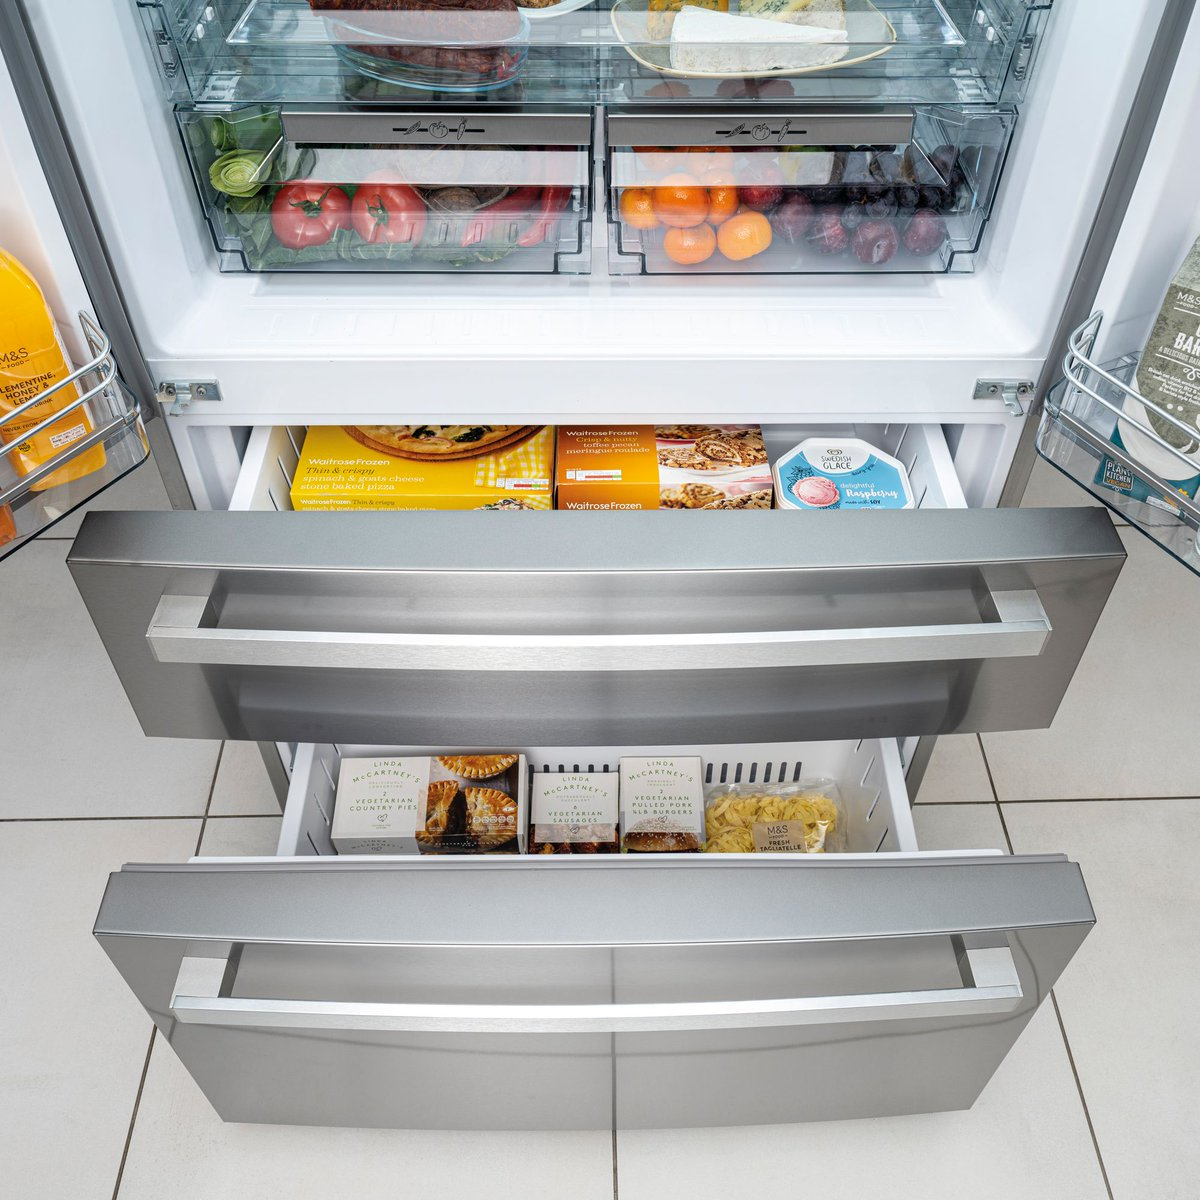 What do you think of our new french door fridge-freezer?😍 With an effortless white LED touch control display, the beautiful CAFF42 features super freeze & super cool functions, as well as Frost-free technology! See More: buff.ly/3mFxjup #CapleQuality #Refrigeration